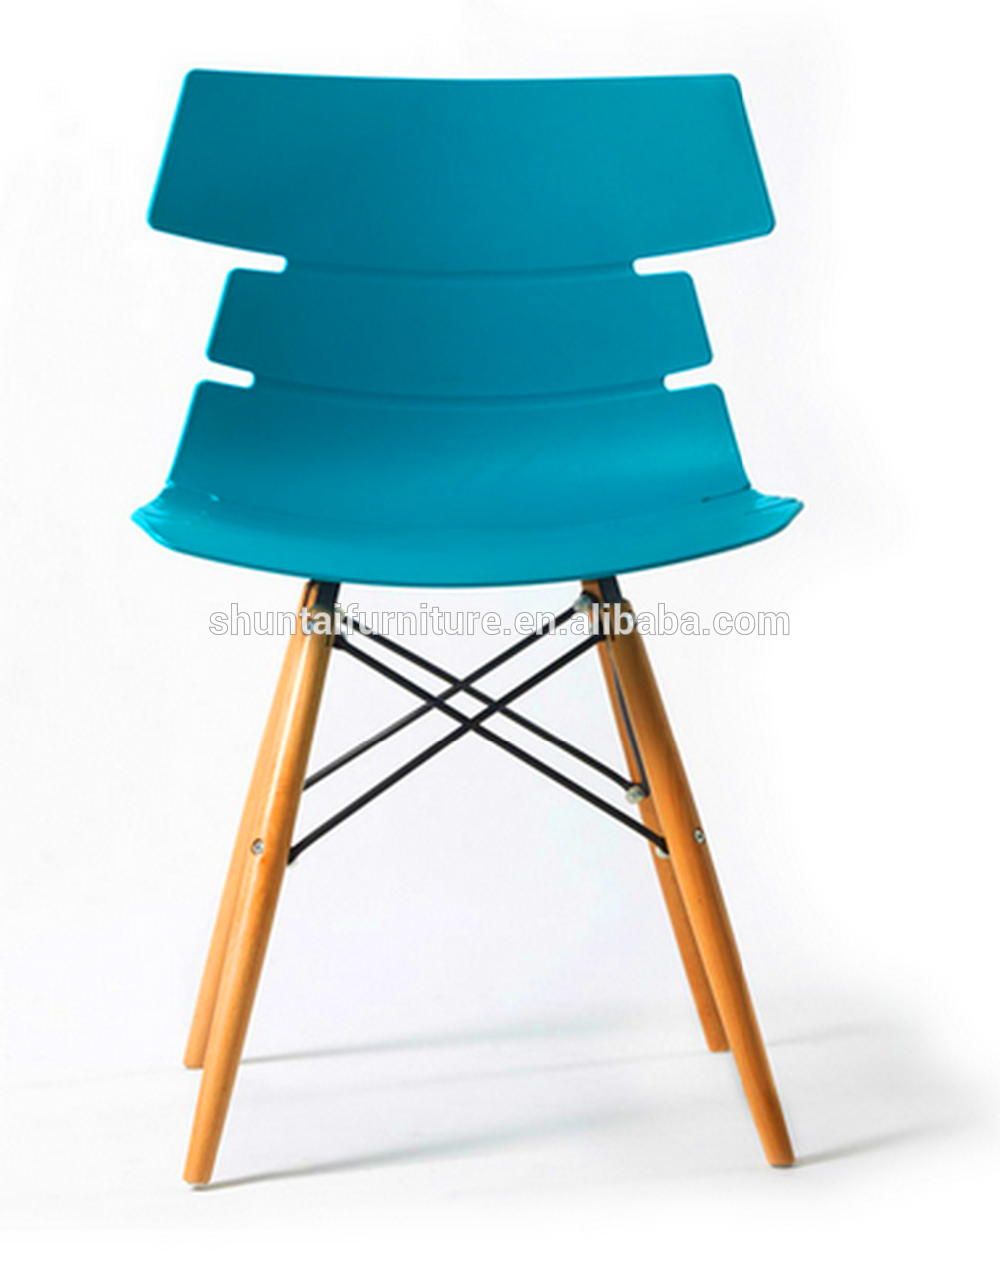 Plastic Resin Dining Chair Leisure Chair Stacking Chairs , Find Complete  Details About Plastic Resin Dining Chair Leisure Chair Stacking Chairs,Plastic  ...